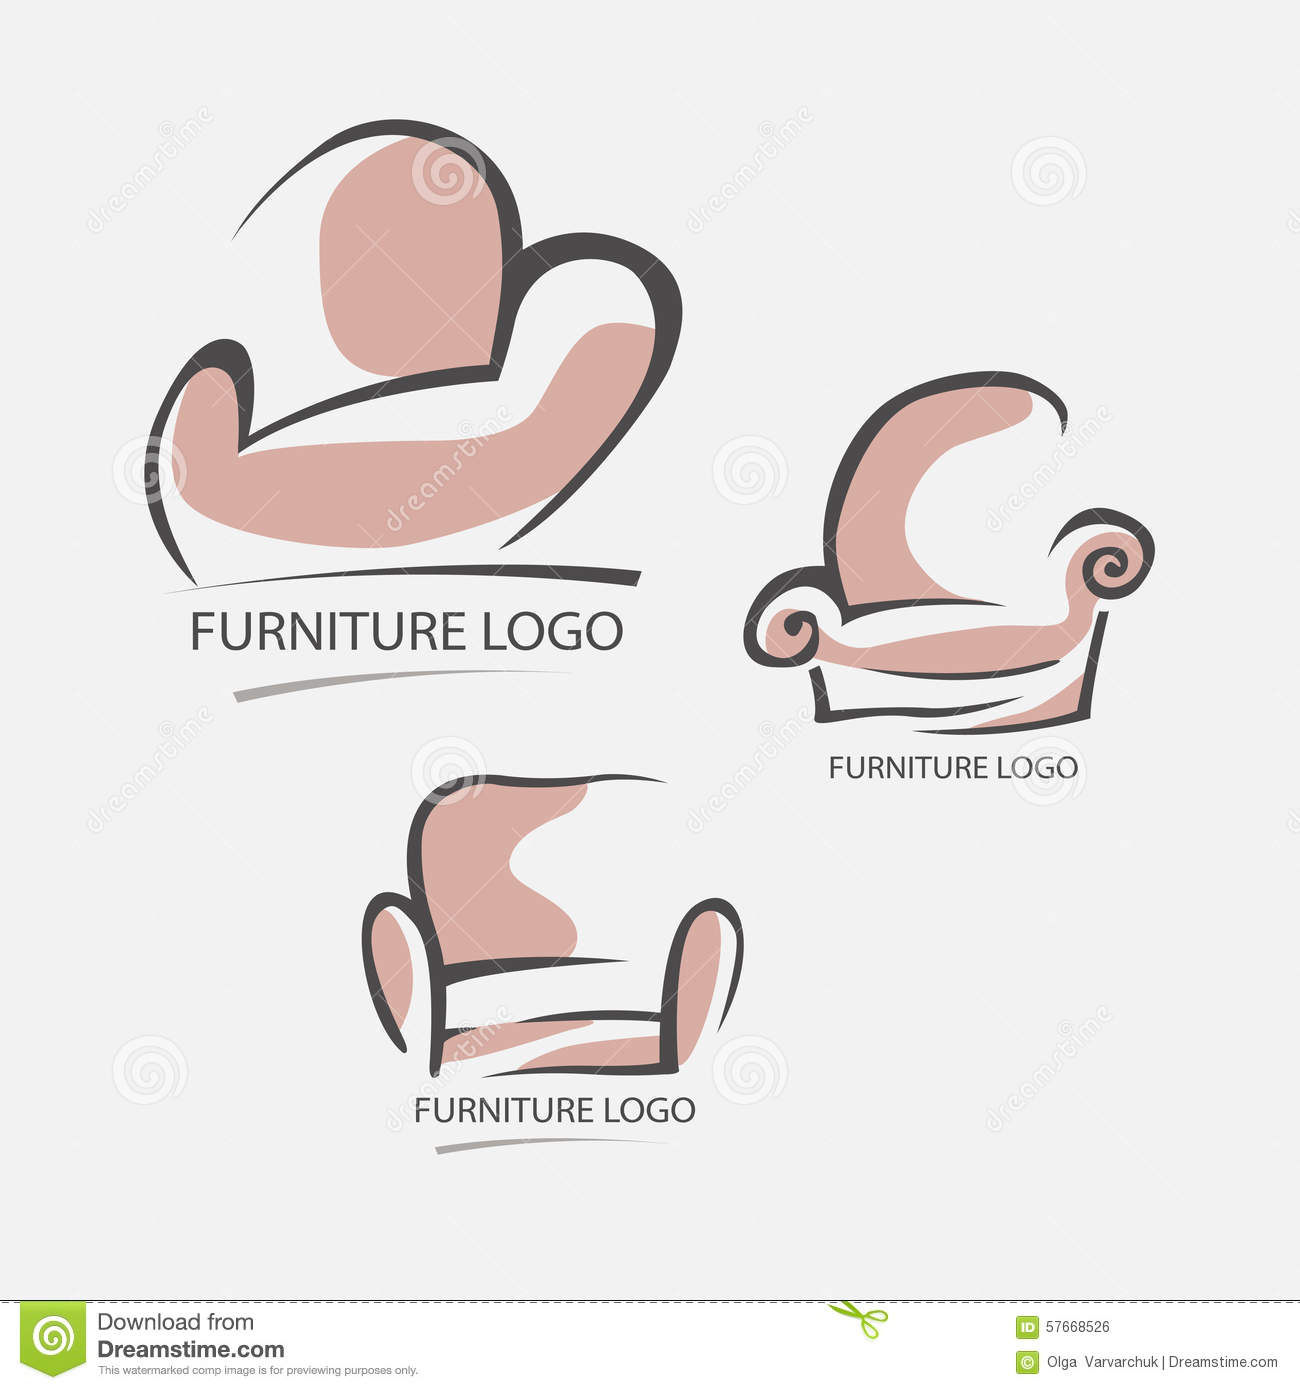 pic stock vector sofa furniture logo for your business element design vector set.